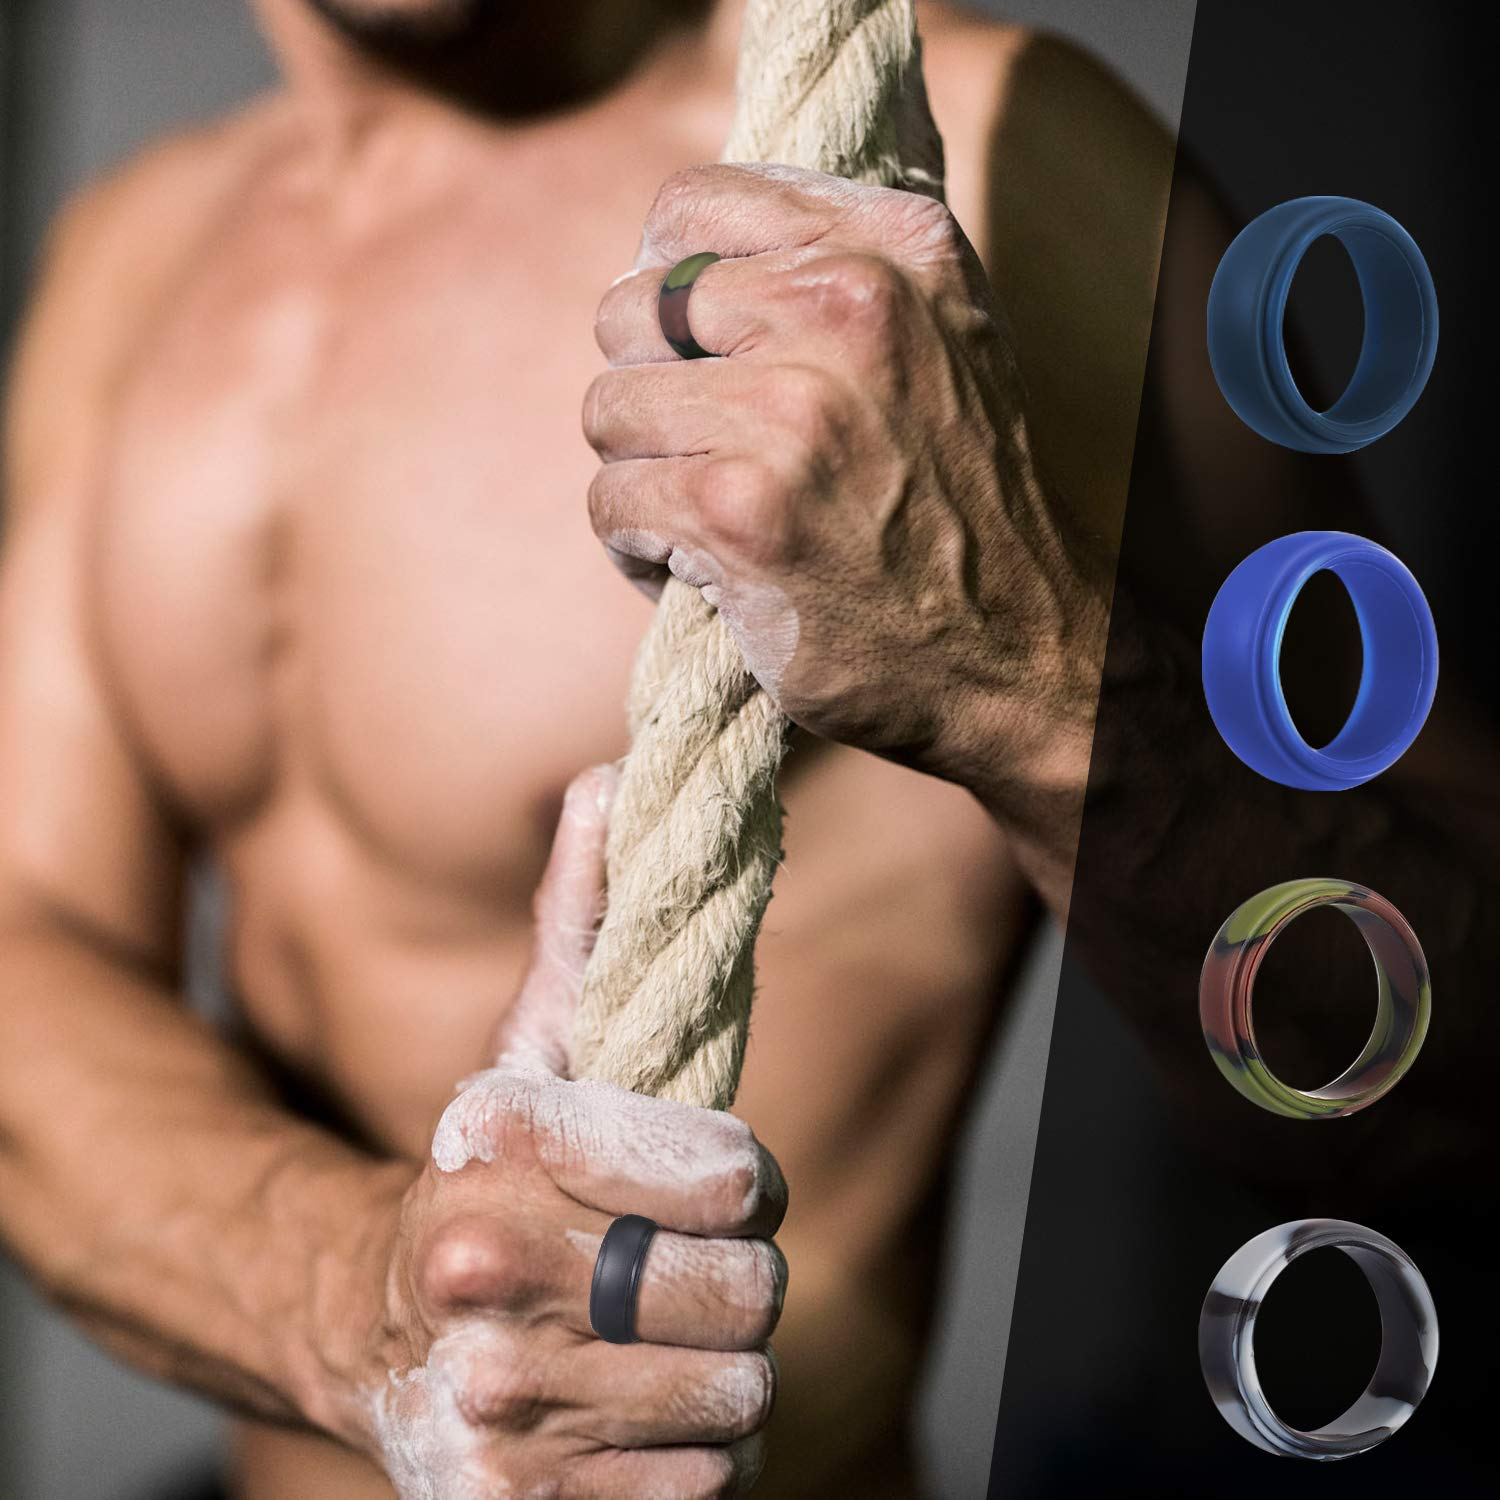 15 Pack Rubber Bands for Men for Workout 15 Pack, 11 Colors Exercise /& Gym Rngeo Silicone Wedding Ring for Men